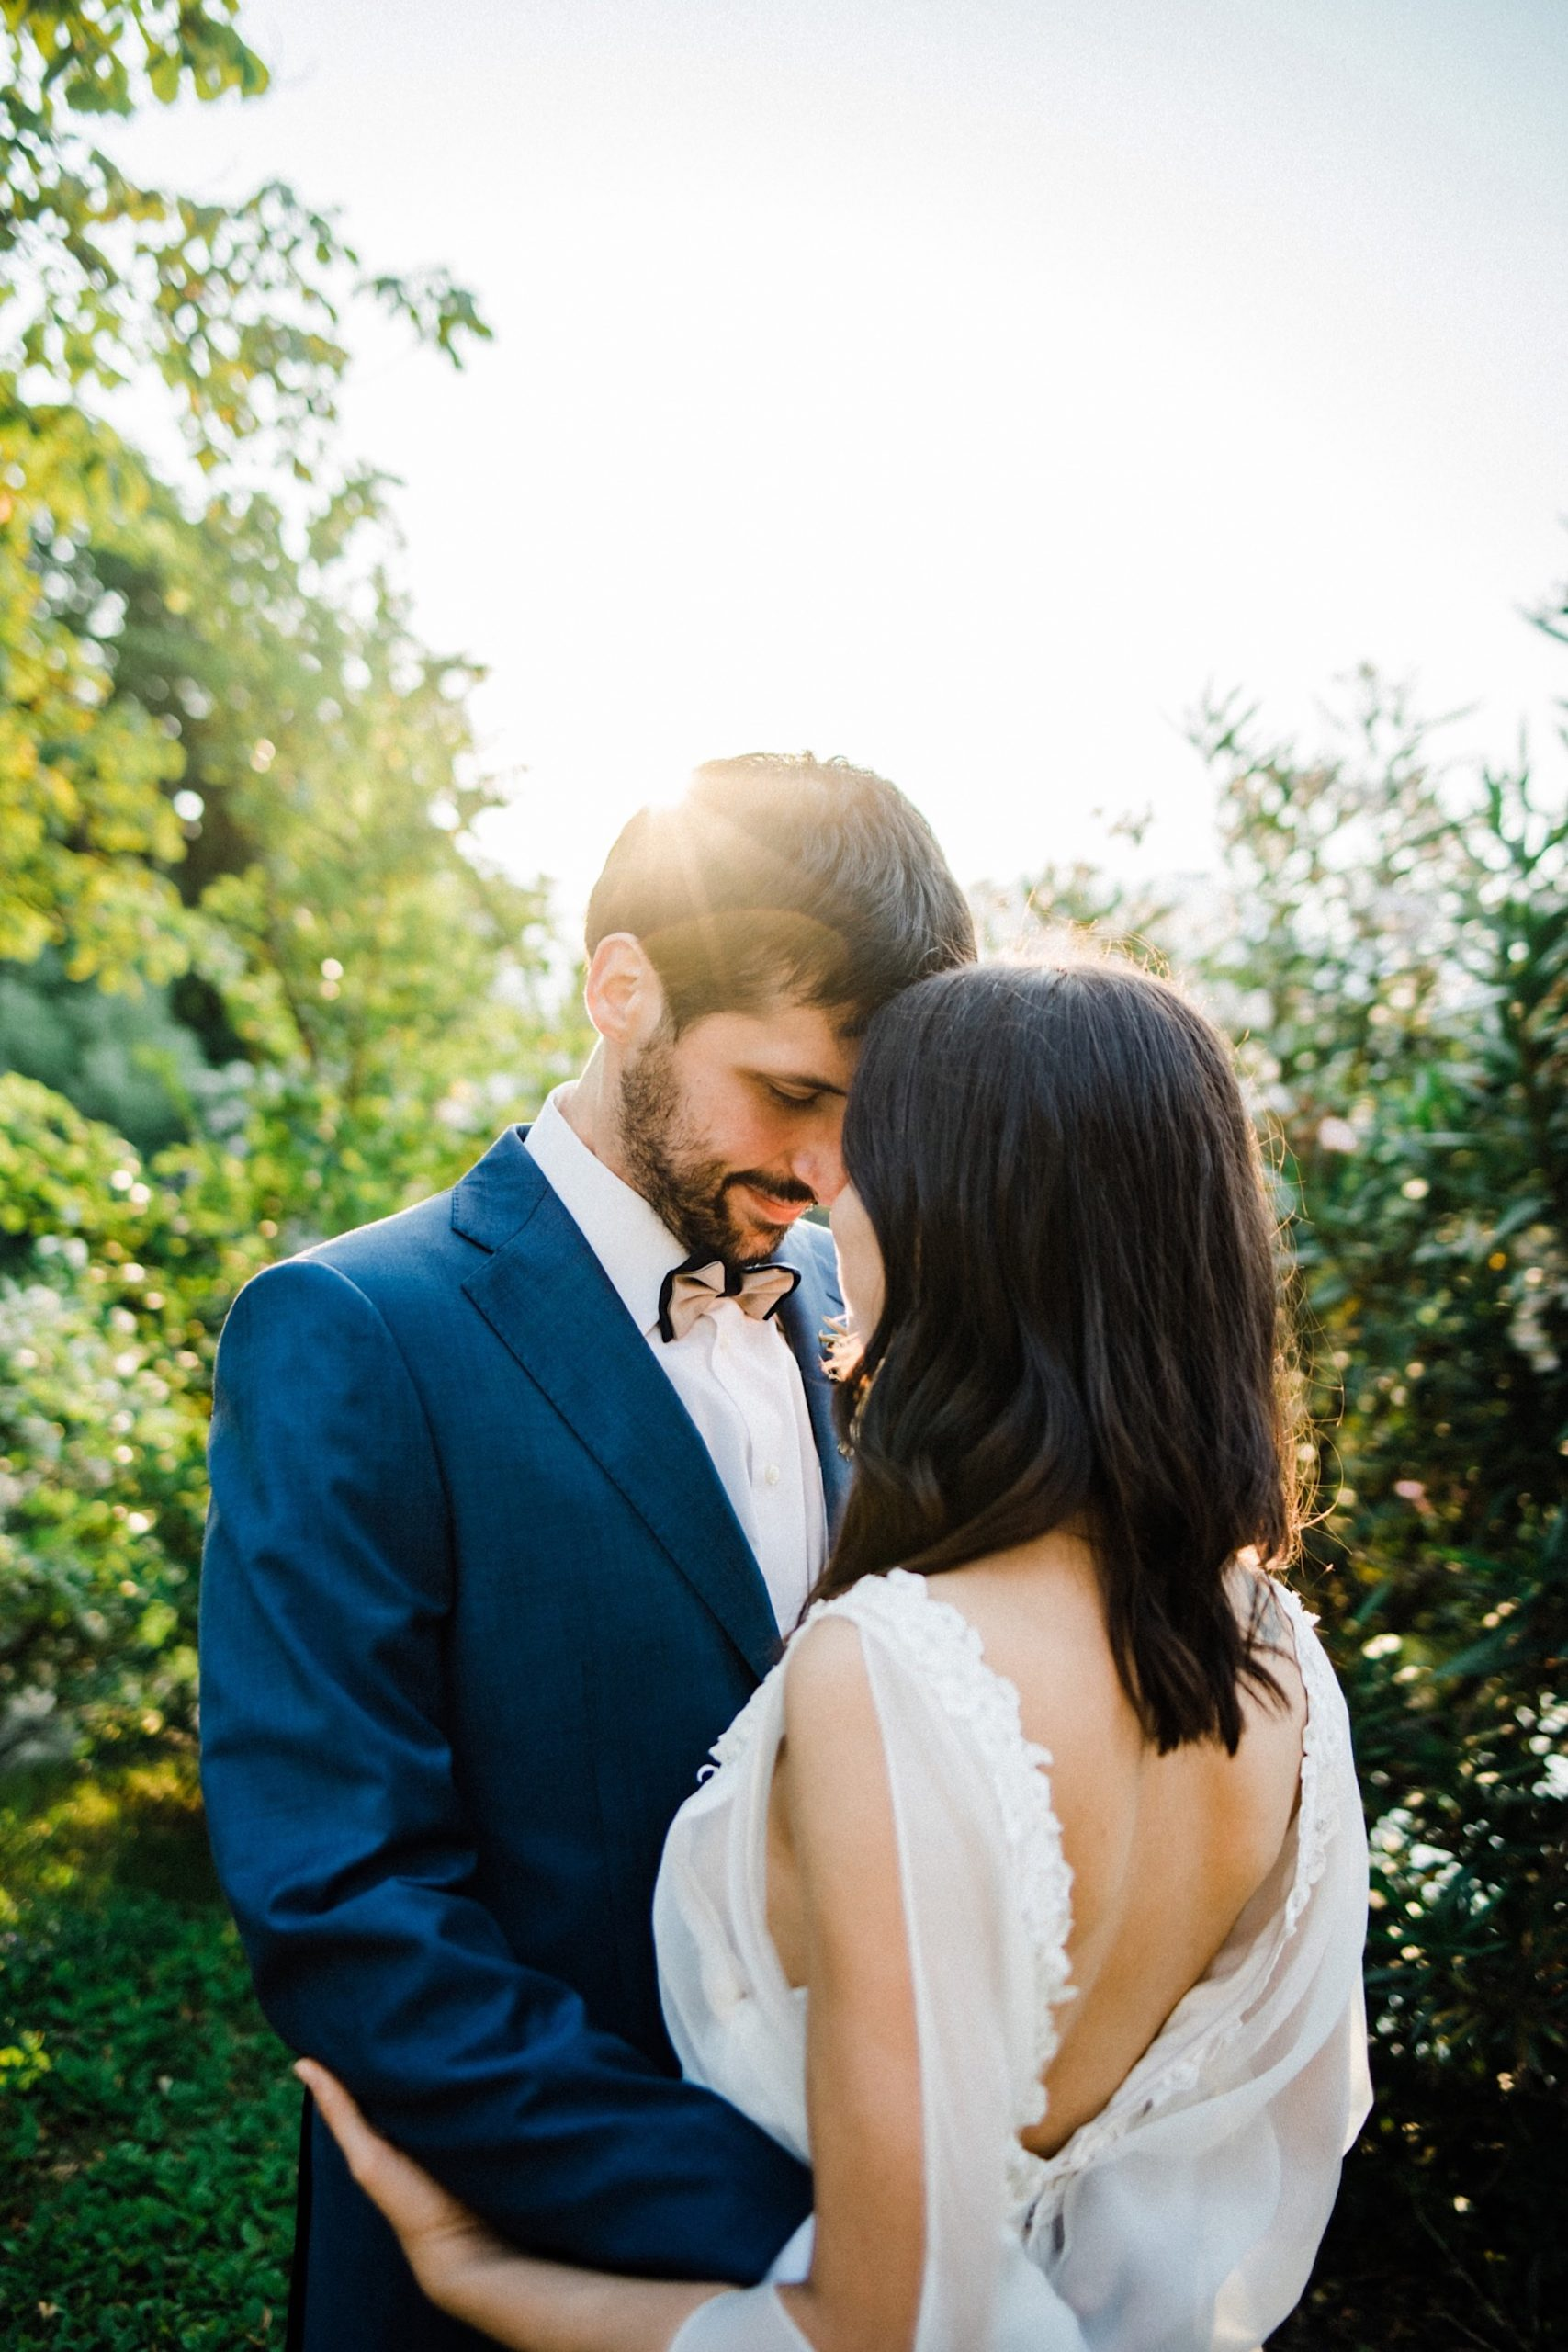 Beautiful, intimate elopement portrait of a couple embracing with their foreheads touching, taken by an Italian Elopement Photographer for their Boho Summer Elopement in Italy.